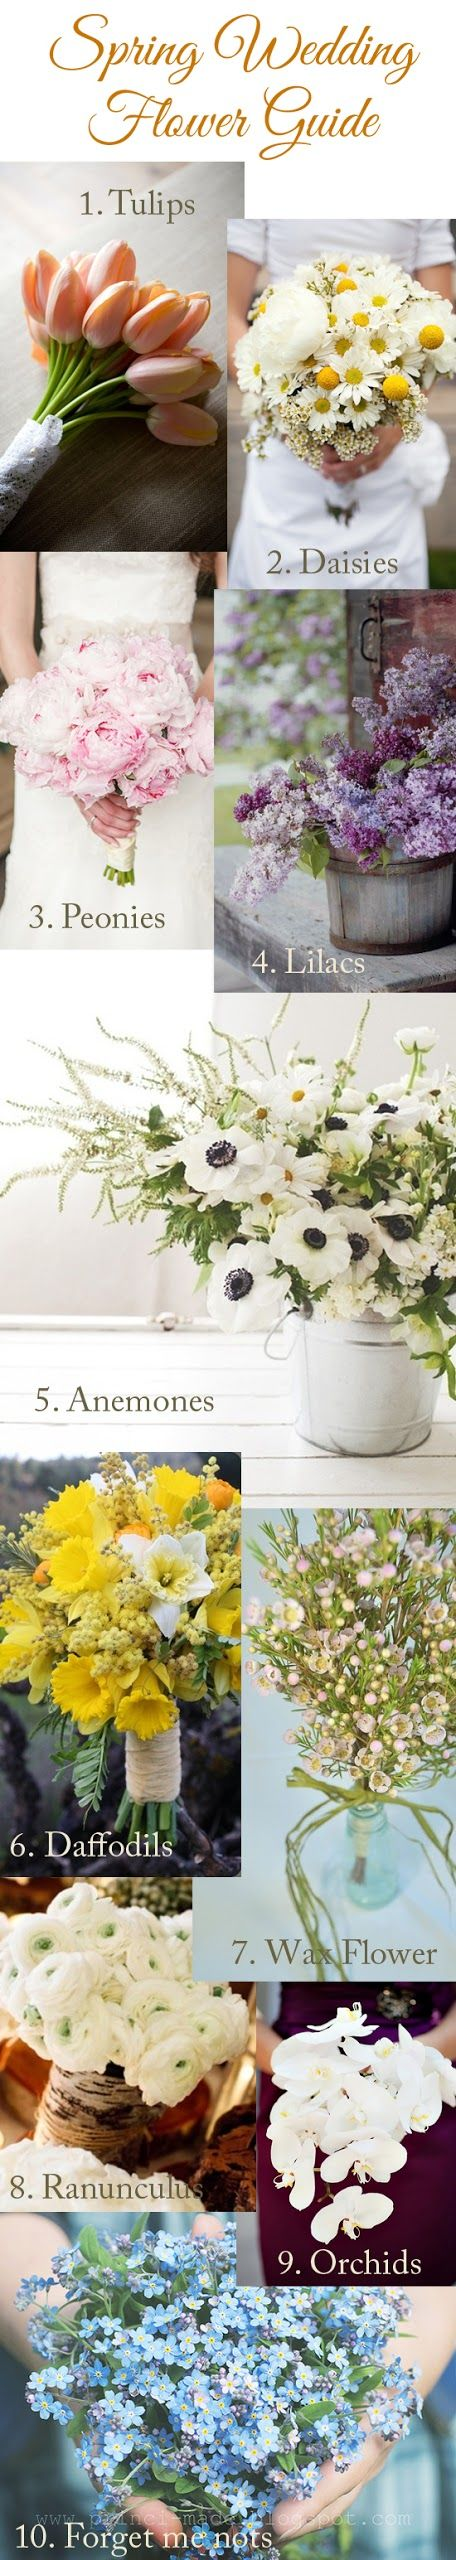 Spring Wedding Flower ideas.